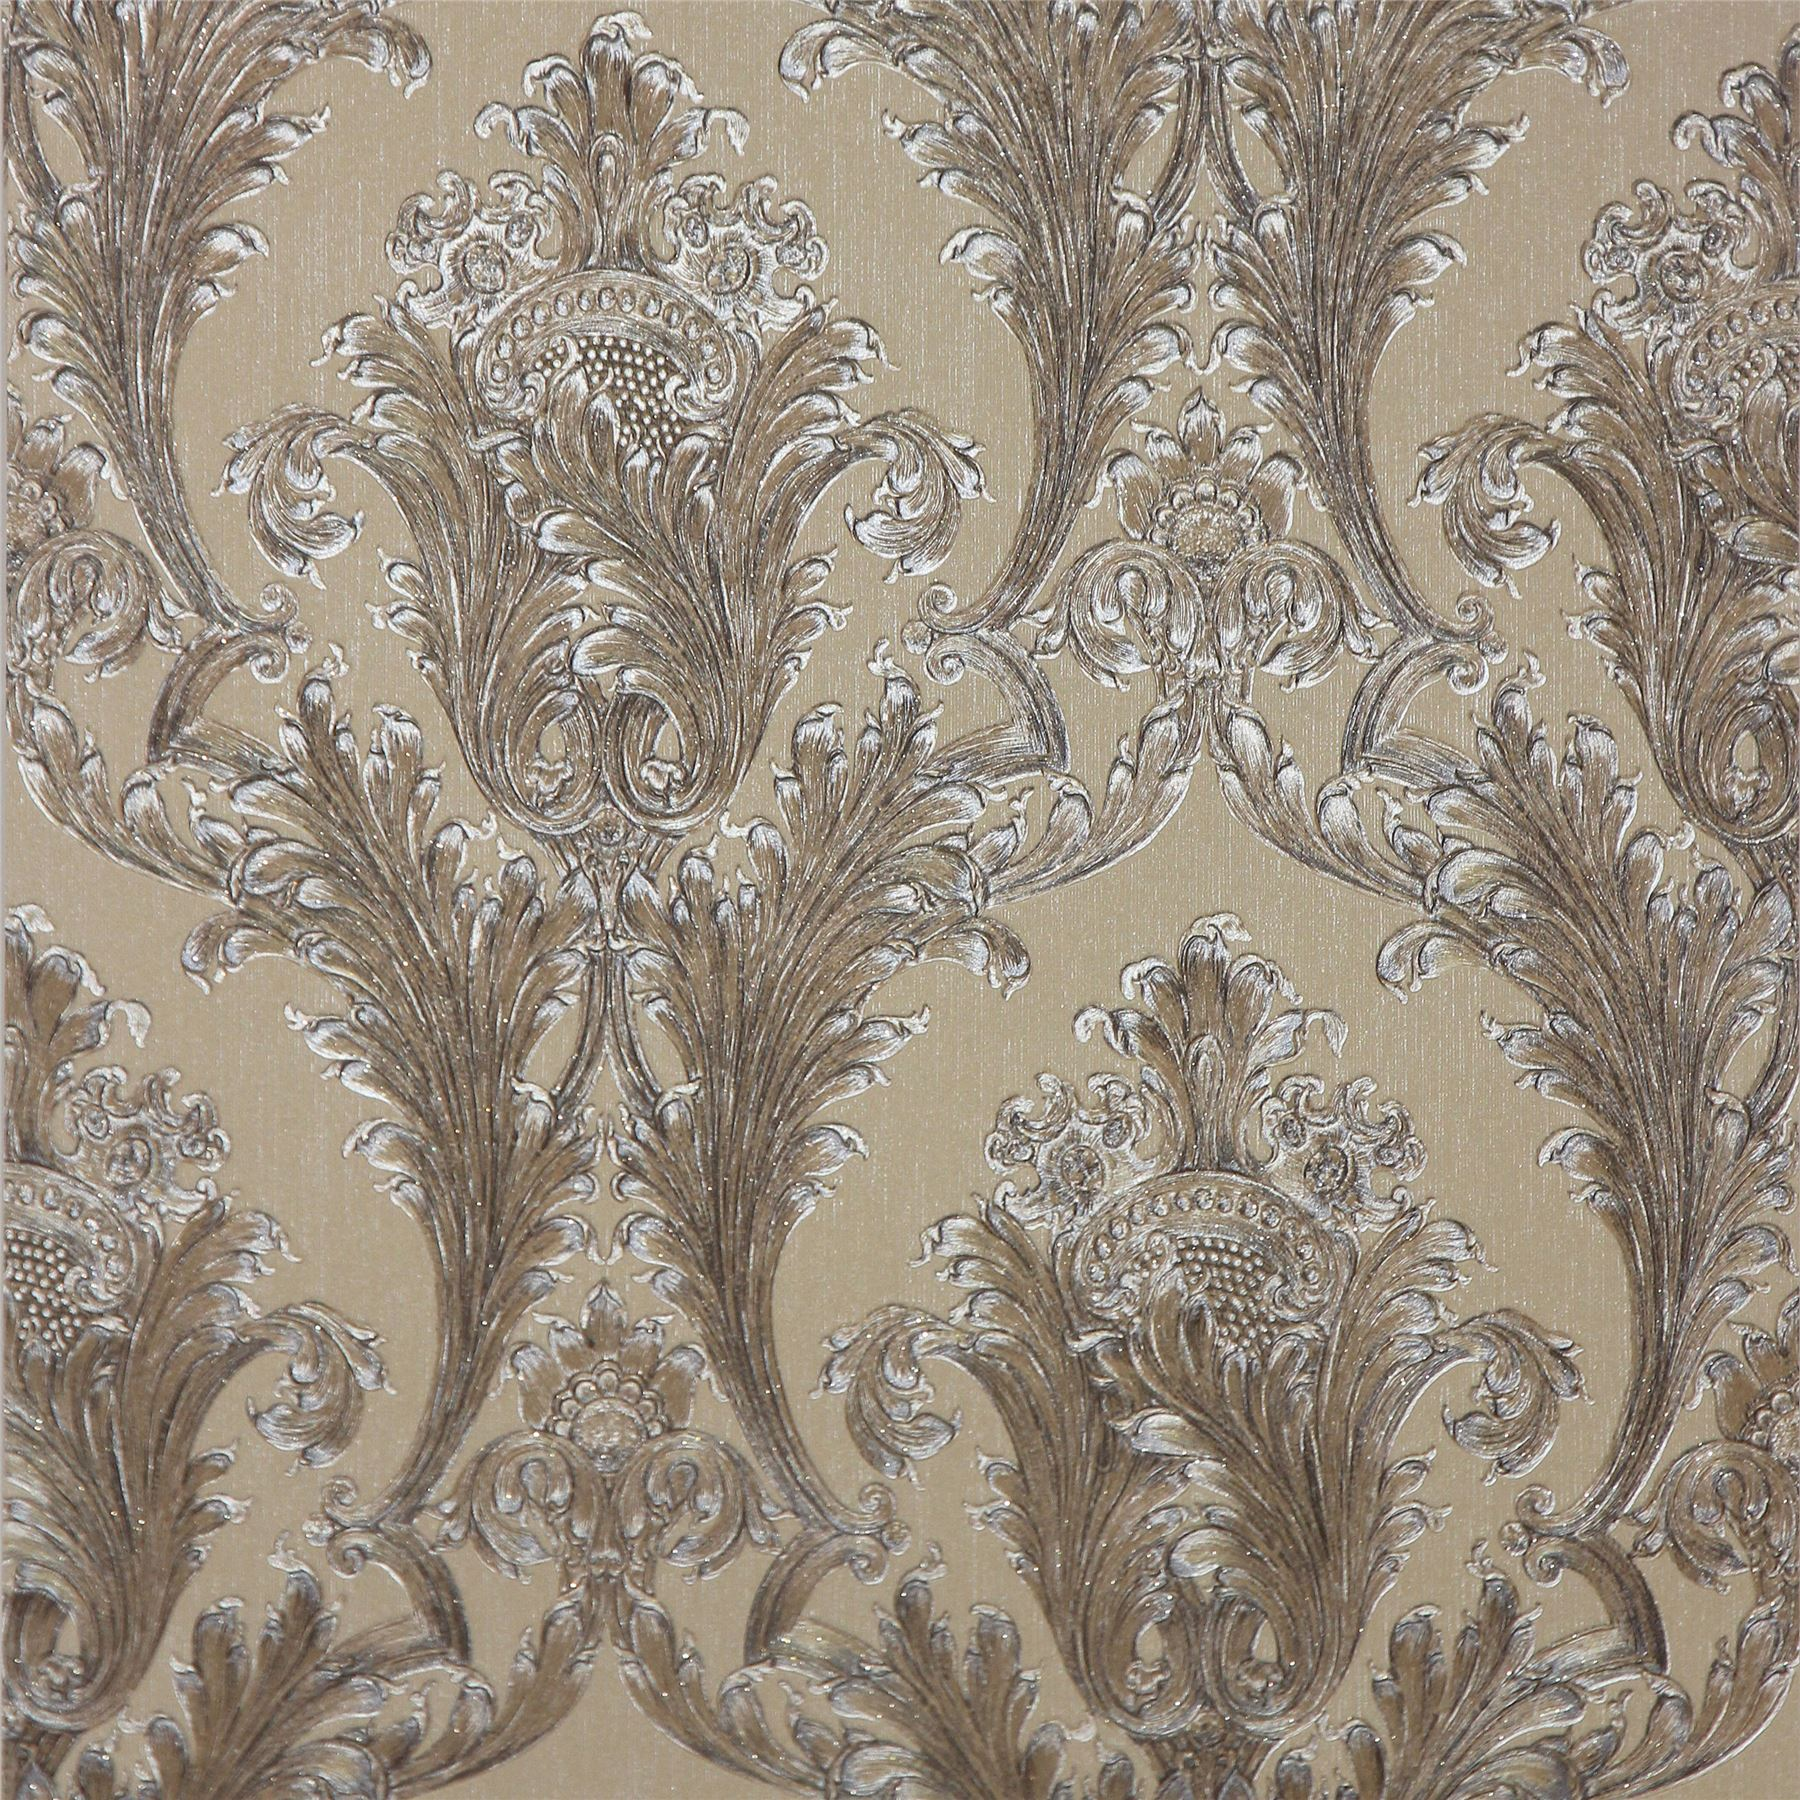 Arthouse Figaro Damask Wallpaper Red Cream Charcoal HD Wallpapers Download Free Images Wallpaper [1000image.com]